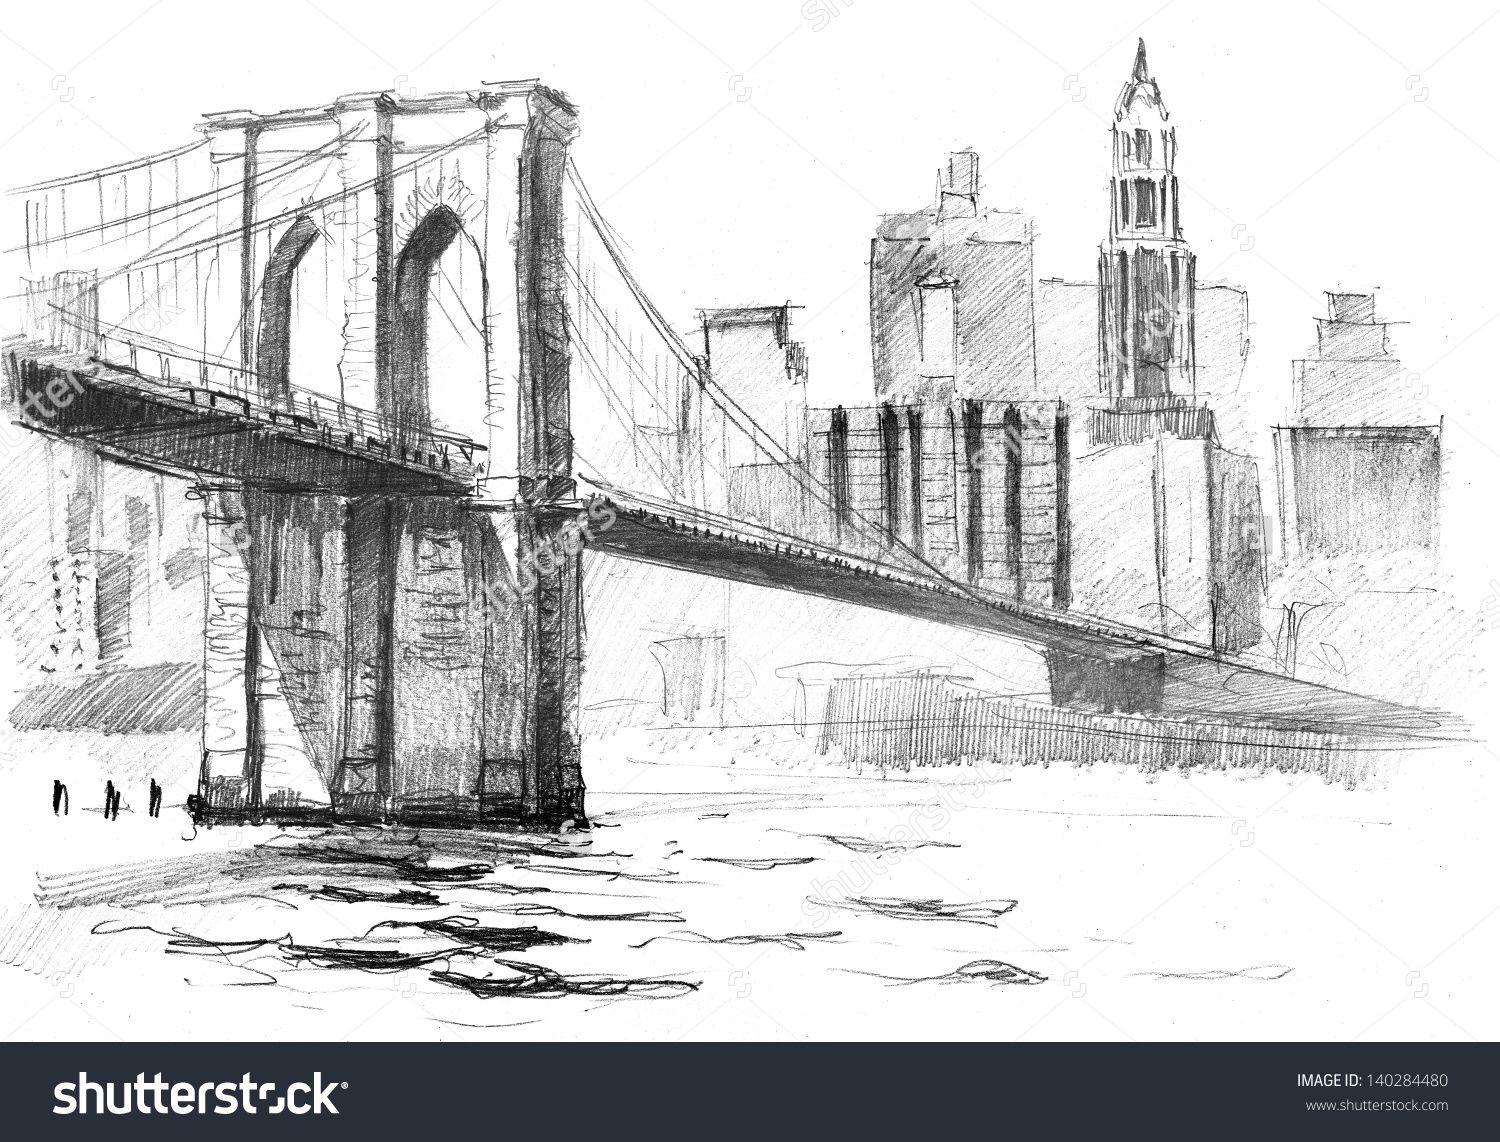 Architectural Drawings Of Bridges bridge drawing stock photos, images, & pictures | shutterstock